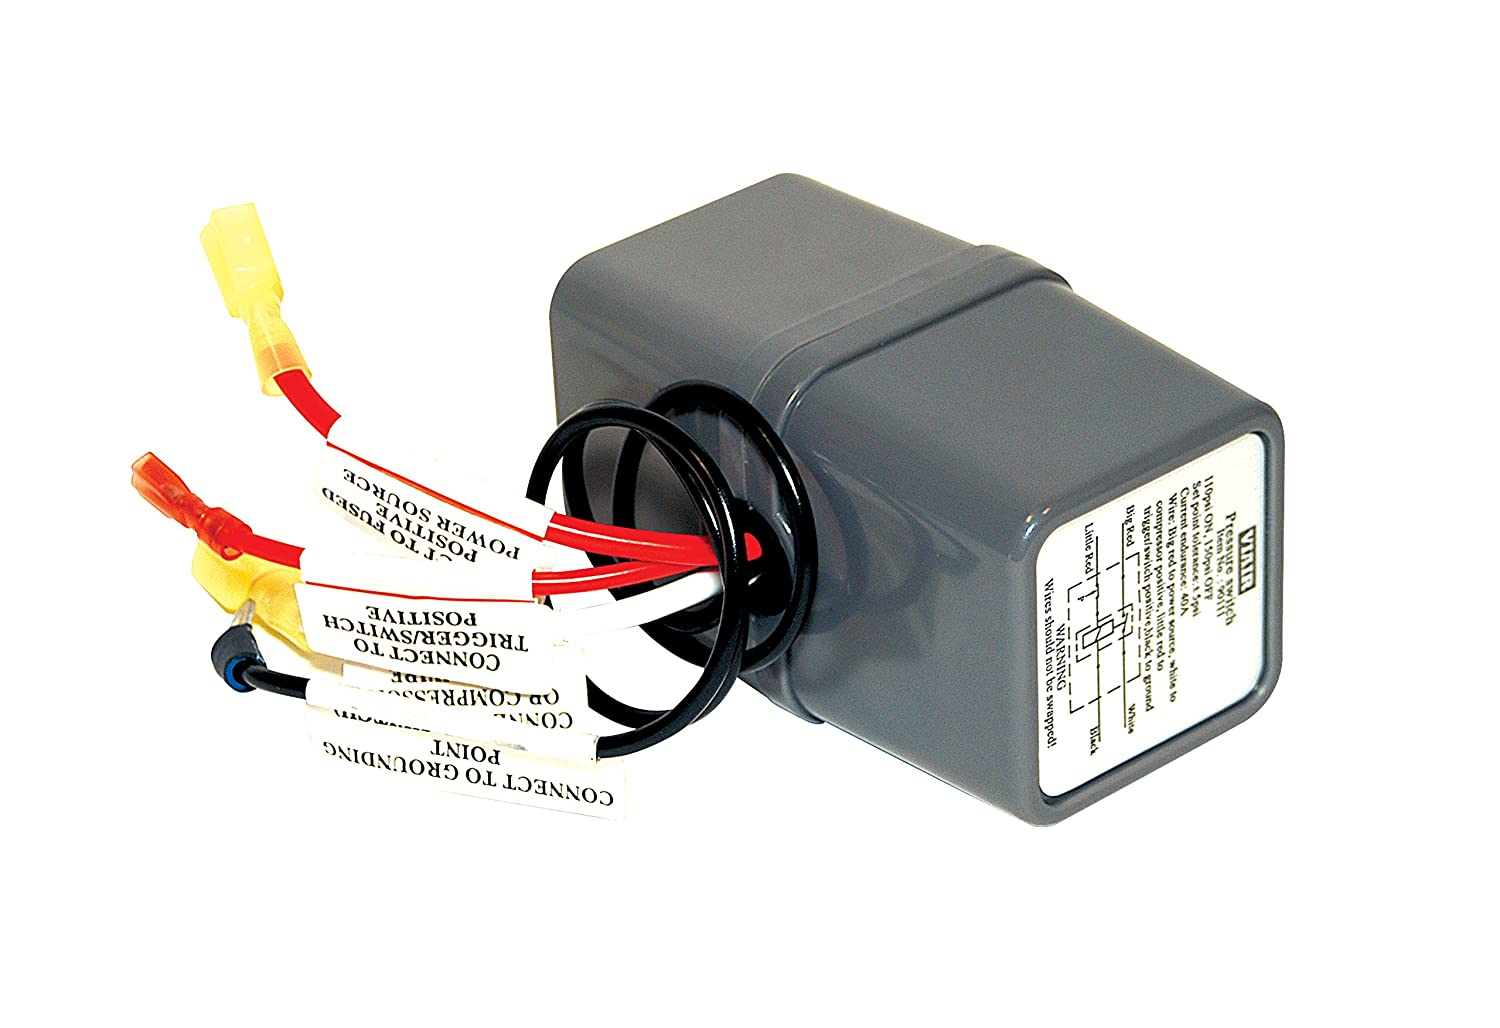 VIAIR 90111 Pressure Switch with Relay on